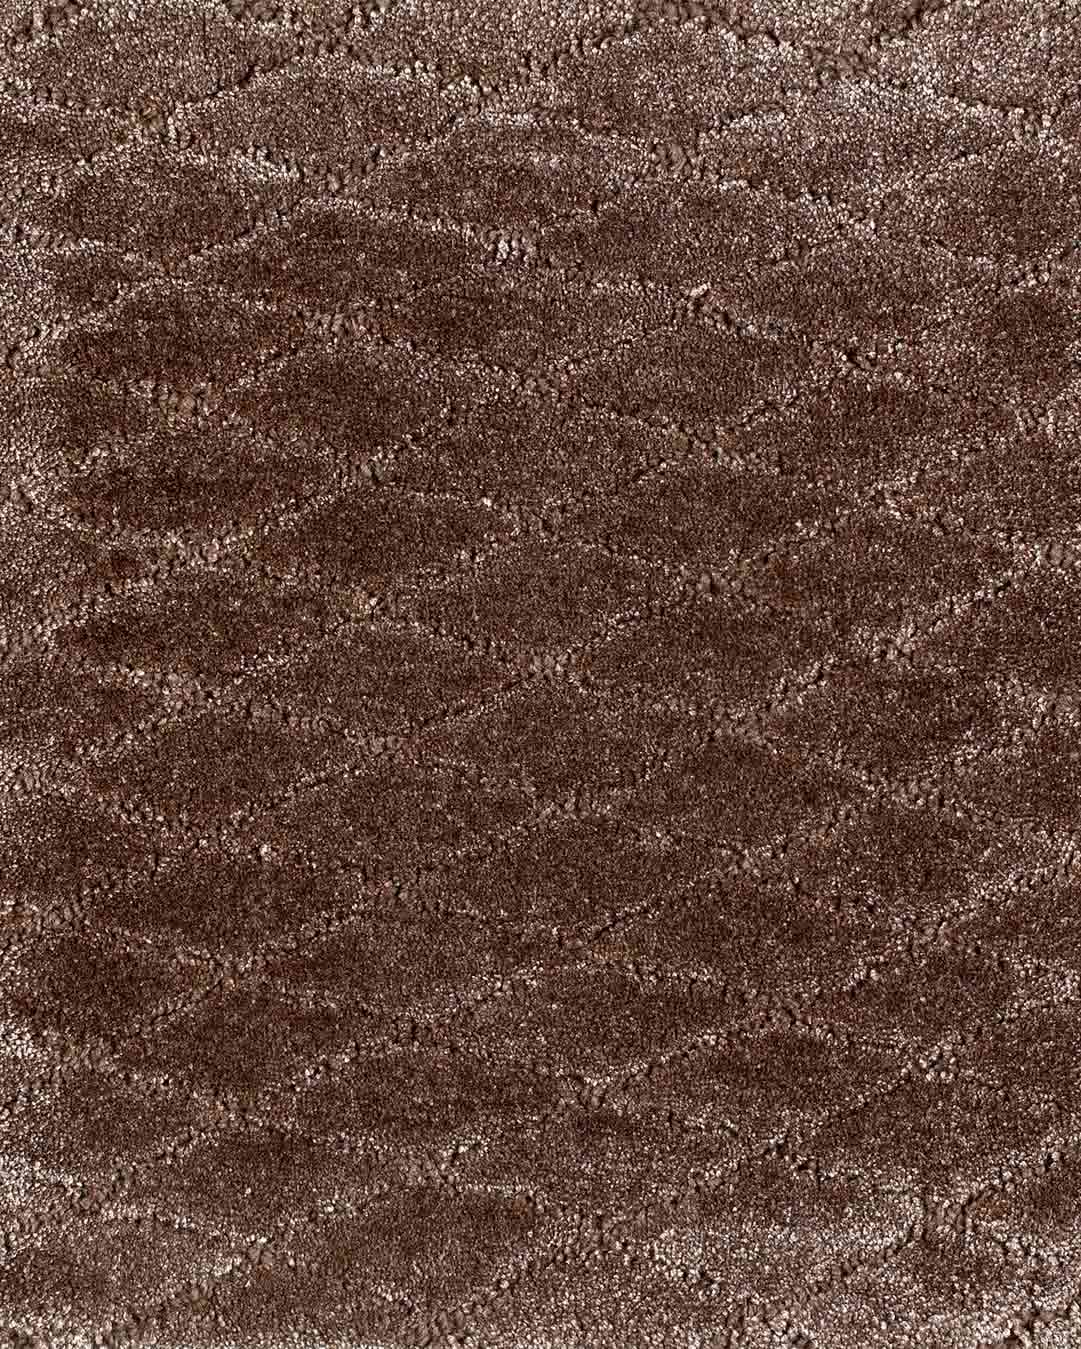 Close up view of textured Diamond Velour rug in taupe brown colour